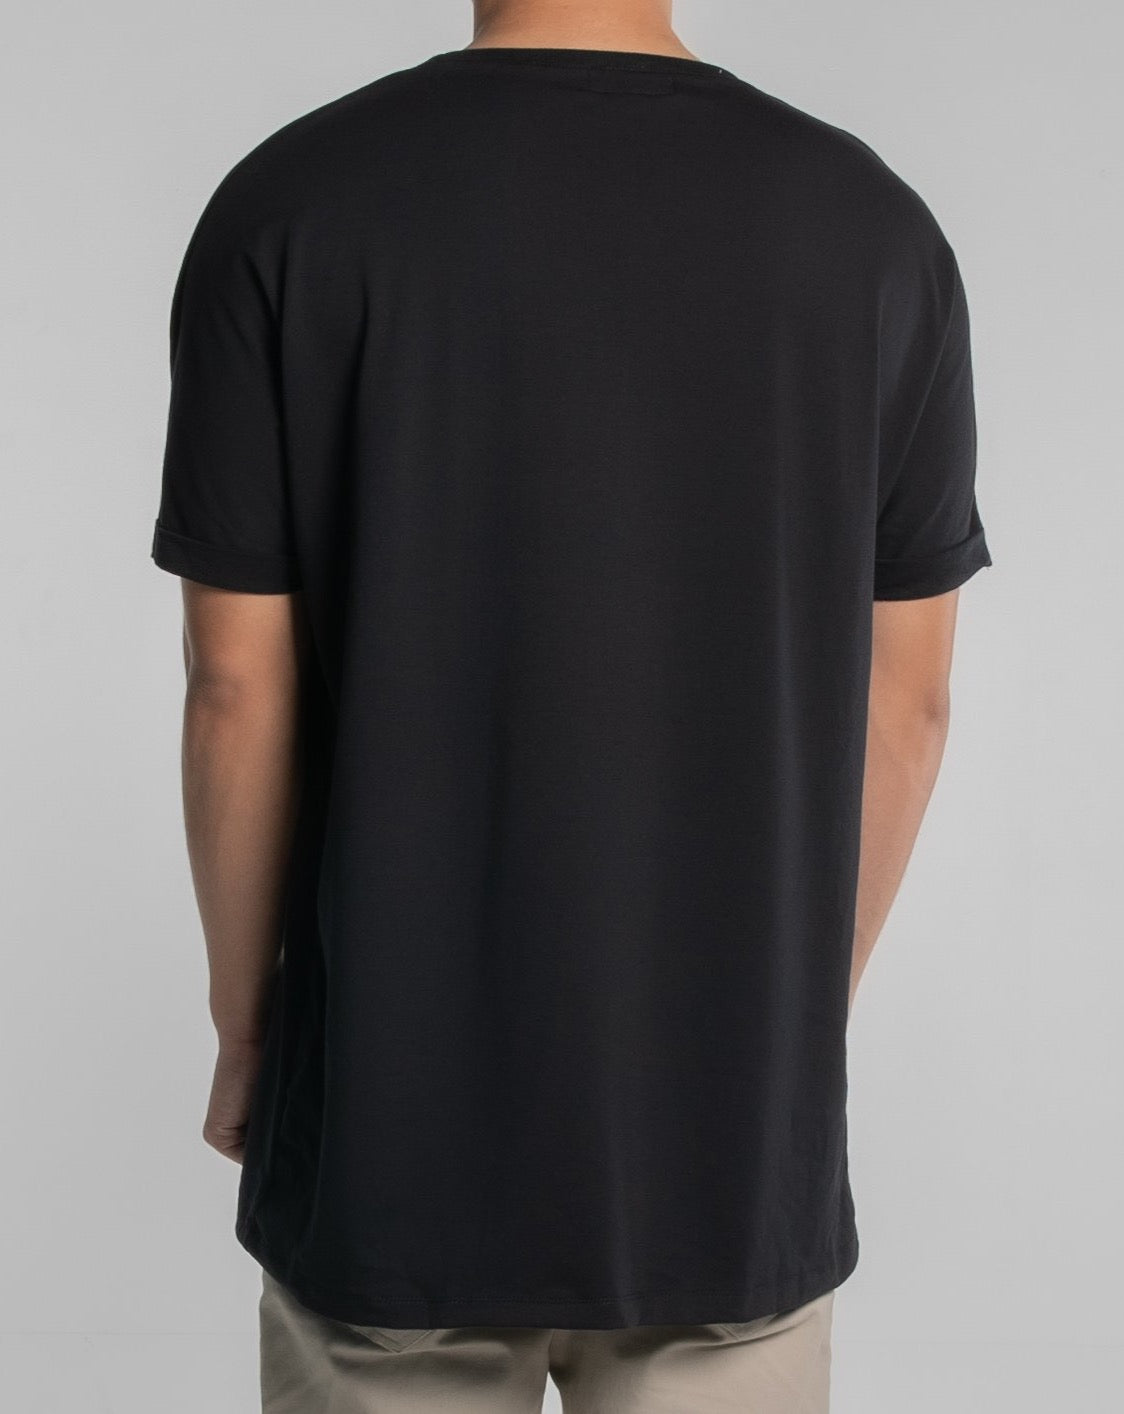 The Authority T-Shirt Folded Sleeve (Black)